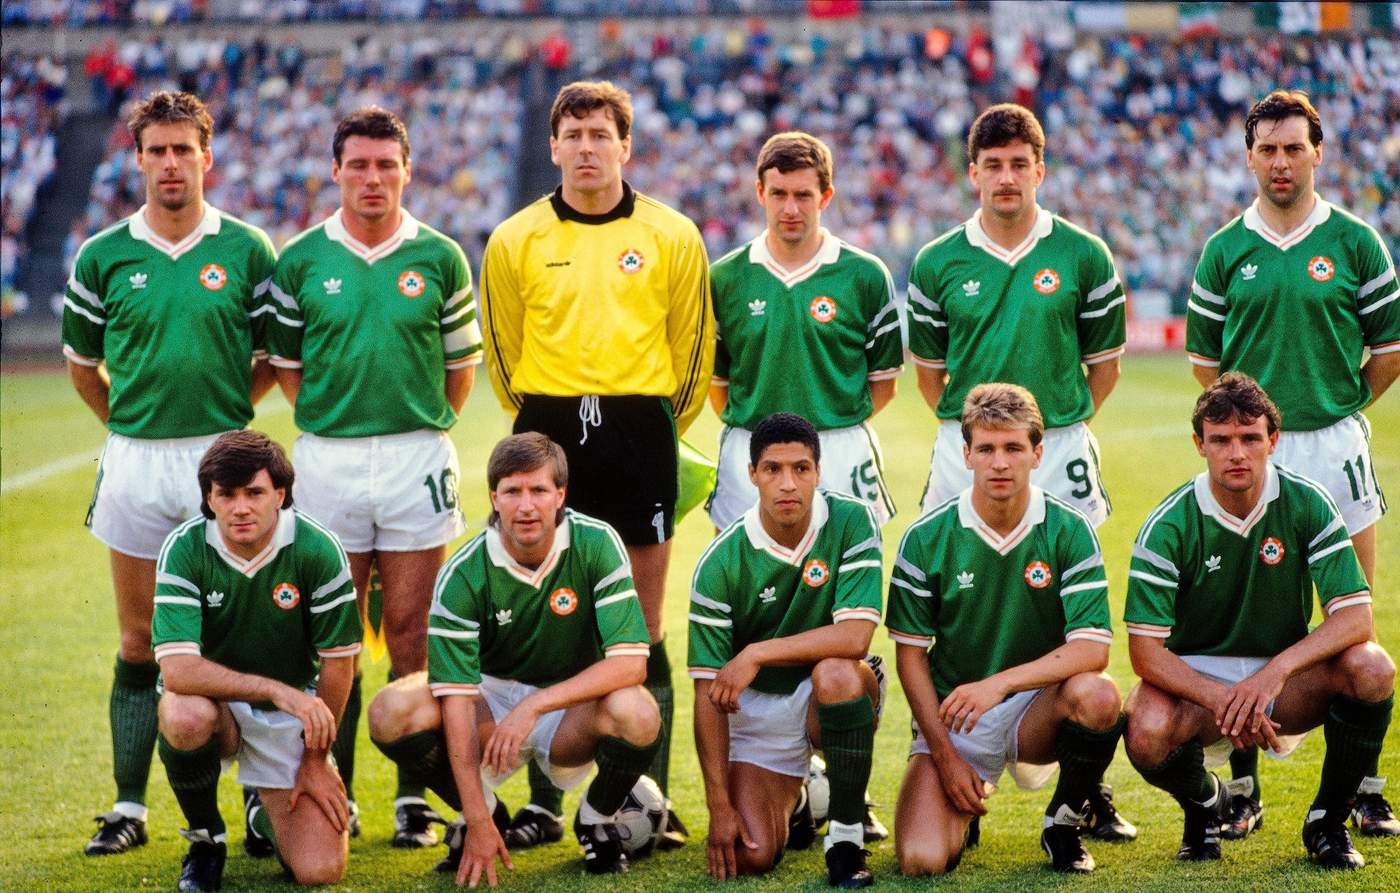 Ferry To Ireland From Holyhead >> The boys in green, Houghton, Euro 88 and one epic journey ...